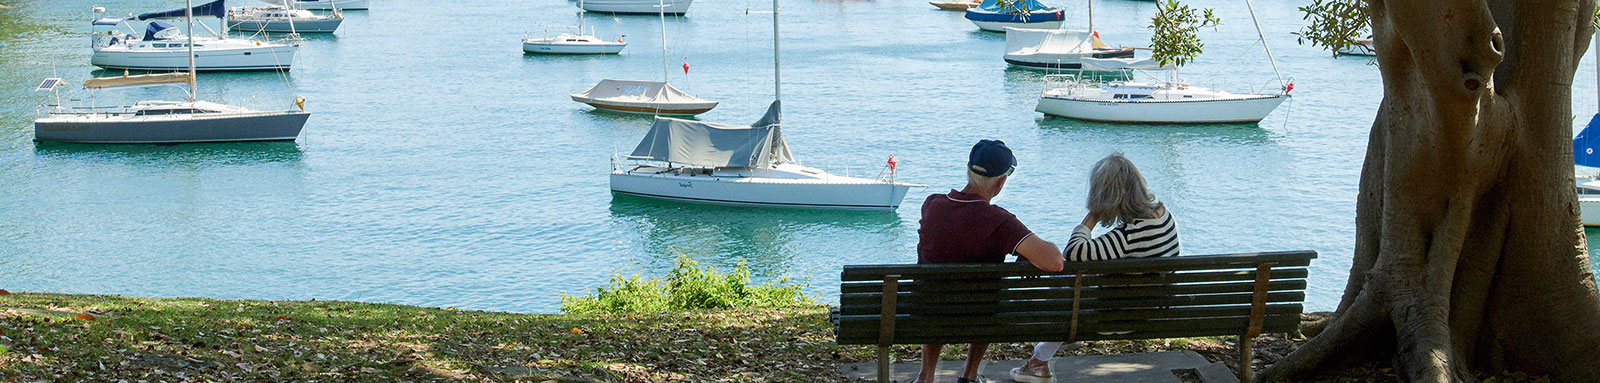 Elder couple sitting on bench gazing at river full  of boats